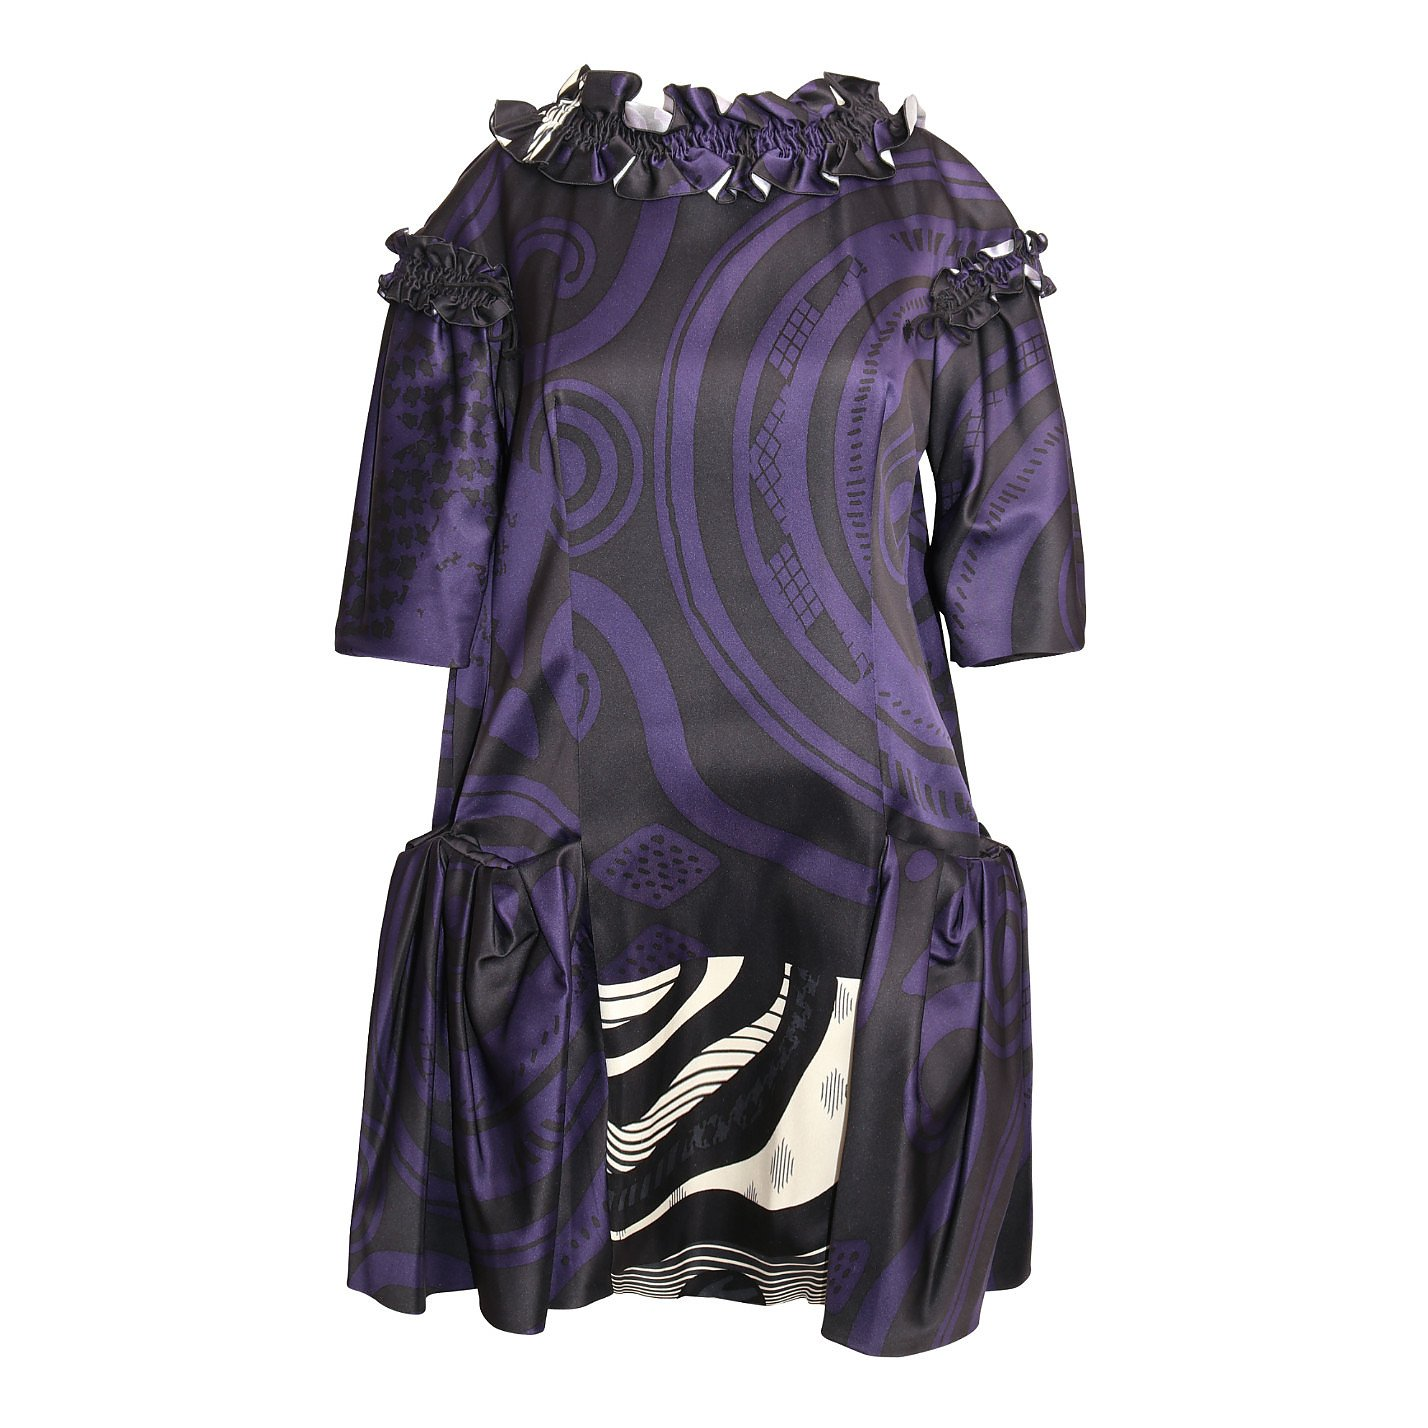 Christian Lacroix Printed Dress With Ruffle Details